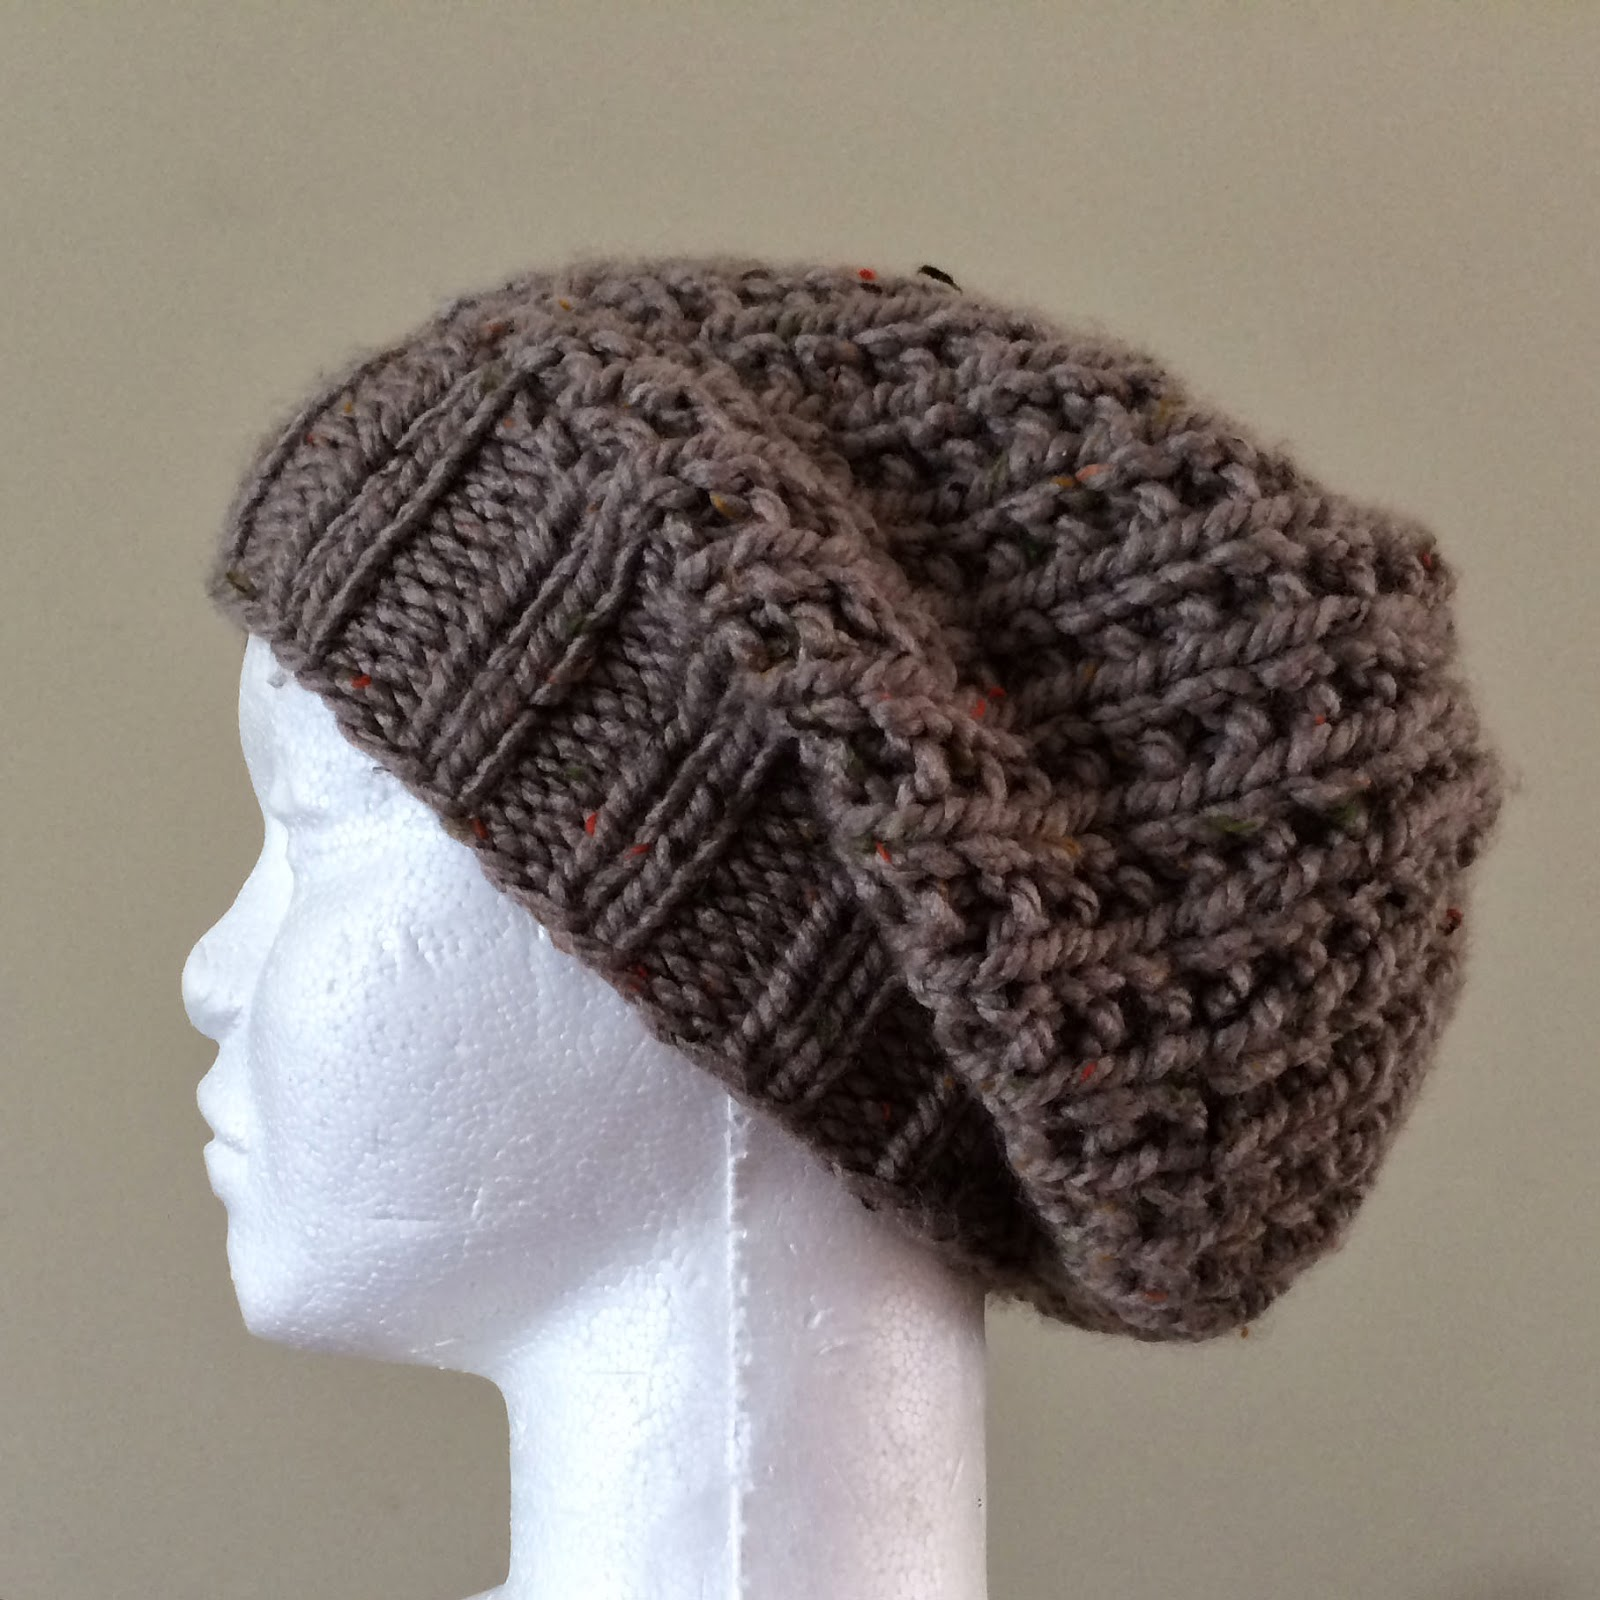 Ruby Knits: Free Pattern Friday - Ribby Slouch Hat